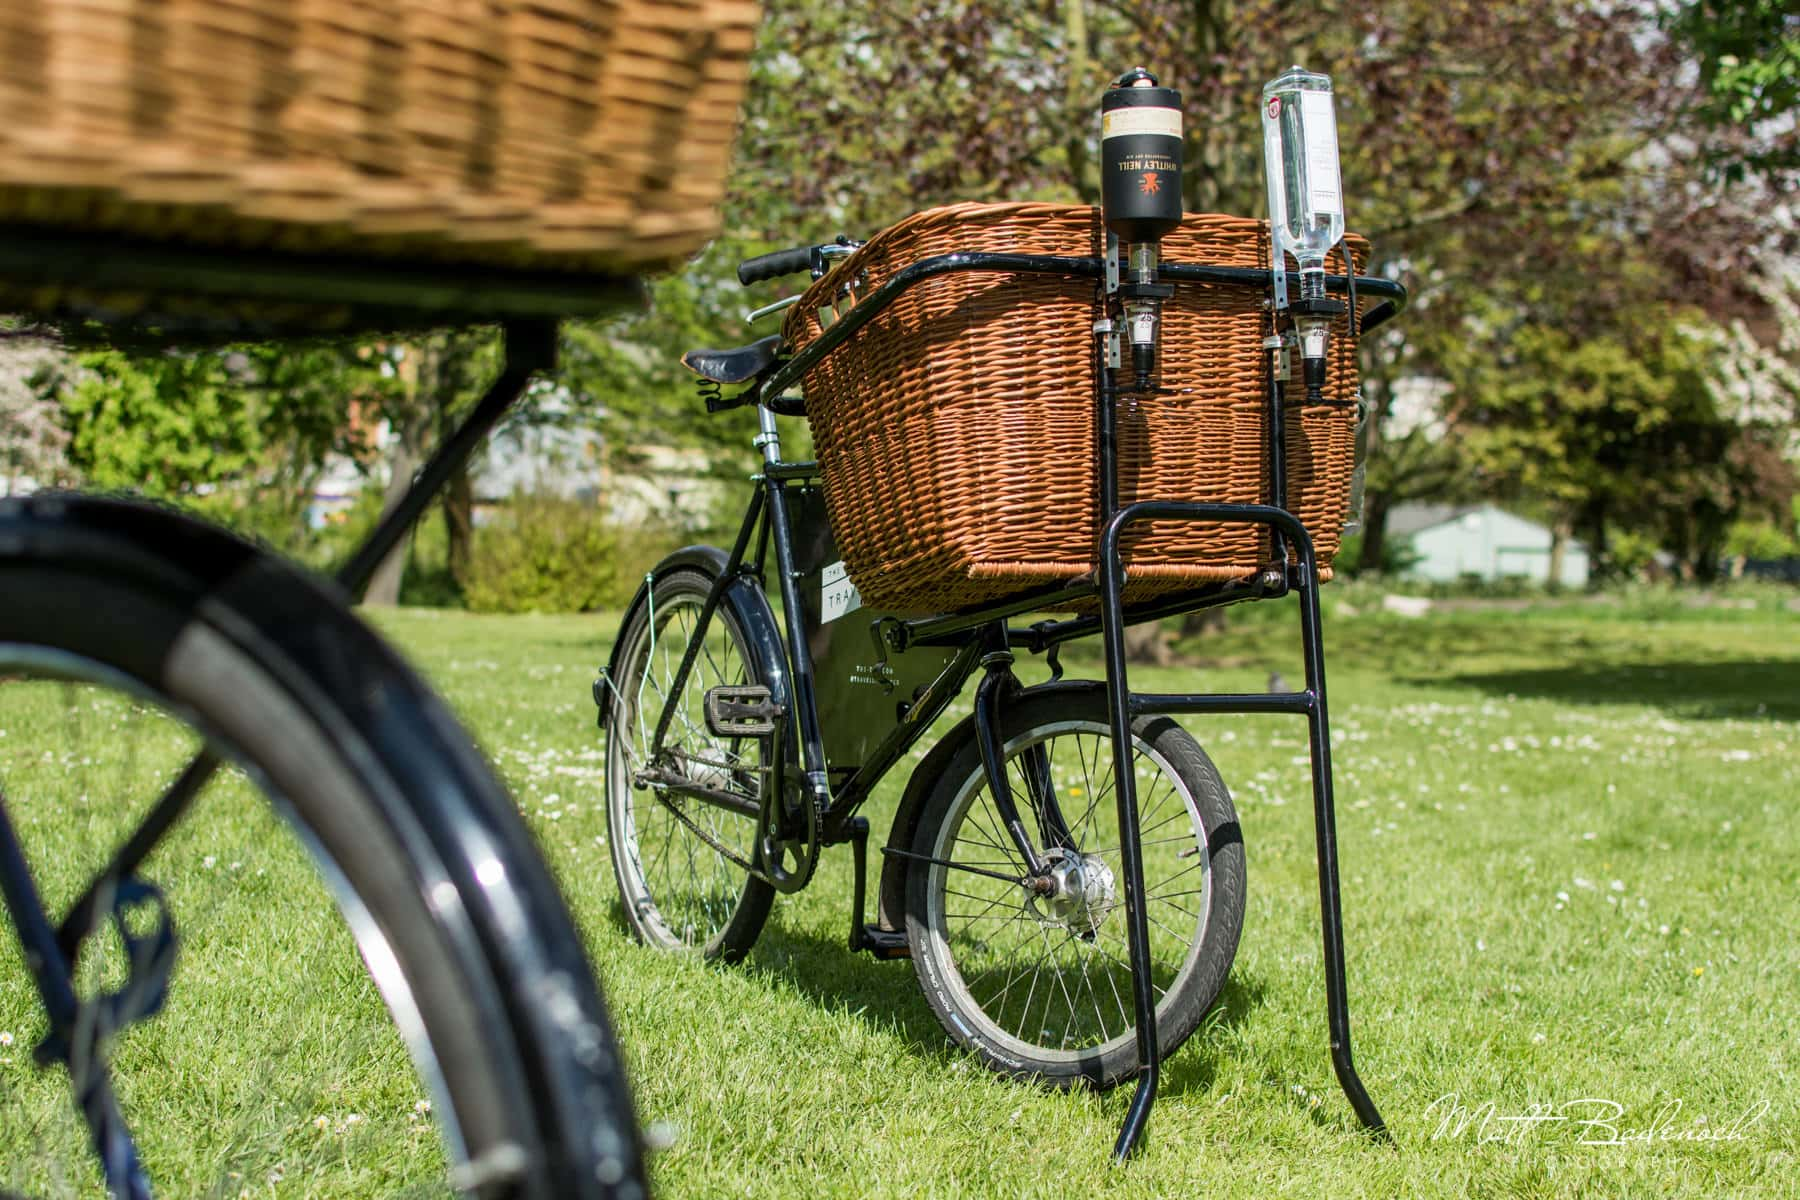 The bikes, The Travelling Gin Co, London Wedding Caterers | Matt Badenoch Photography